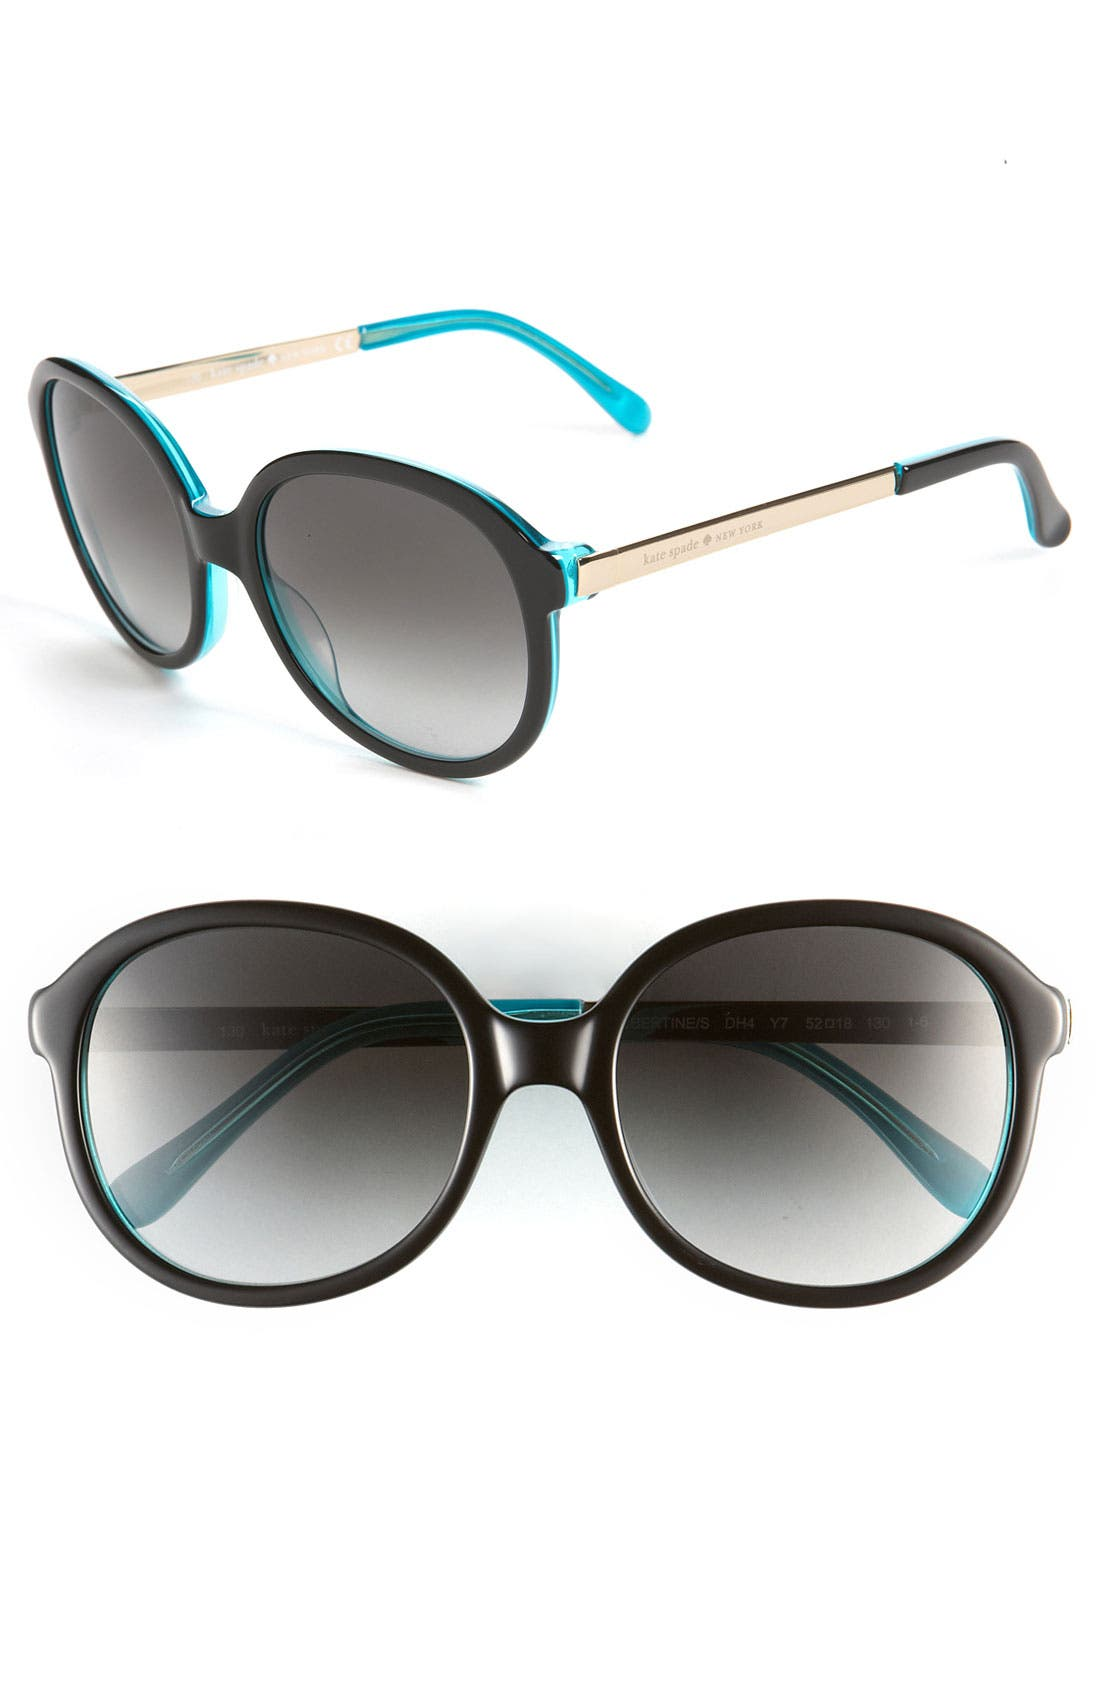 Main Image - kate spade new york oversized sunglasses